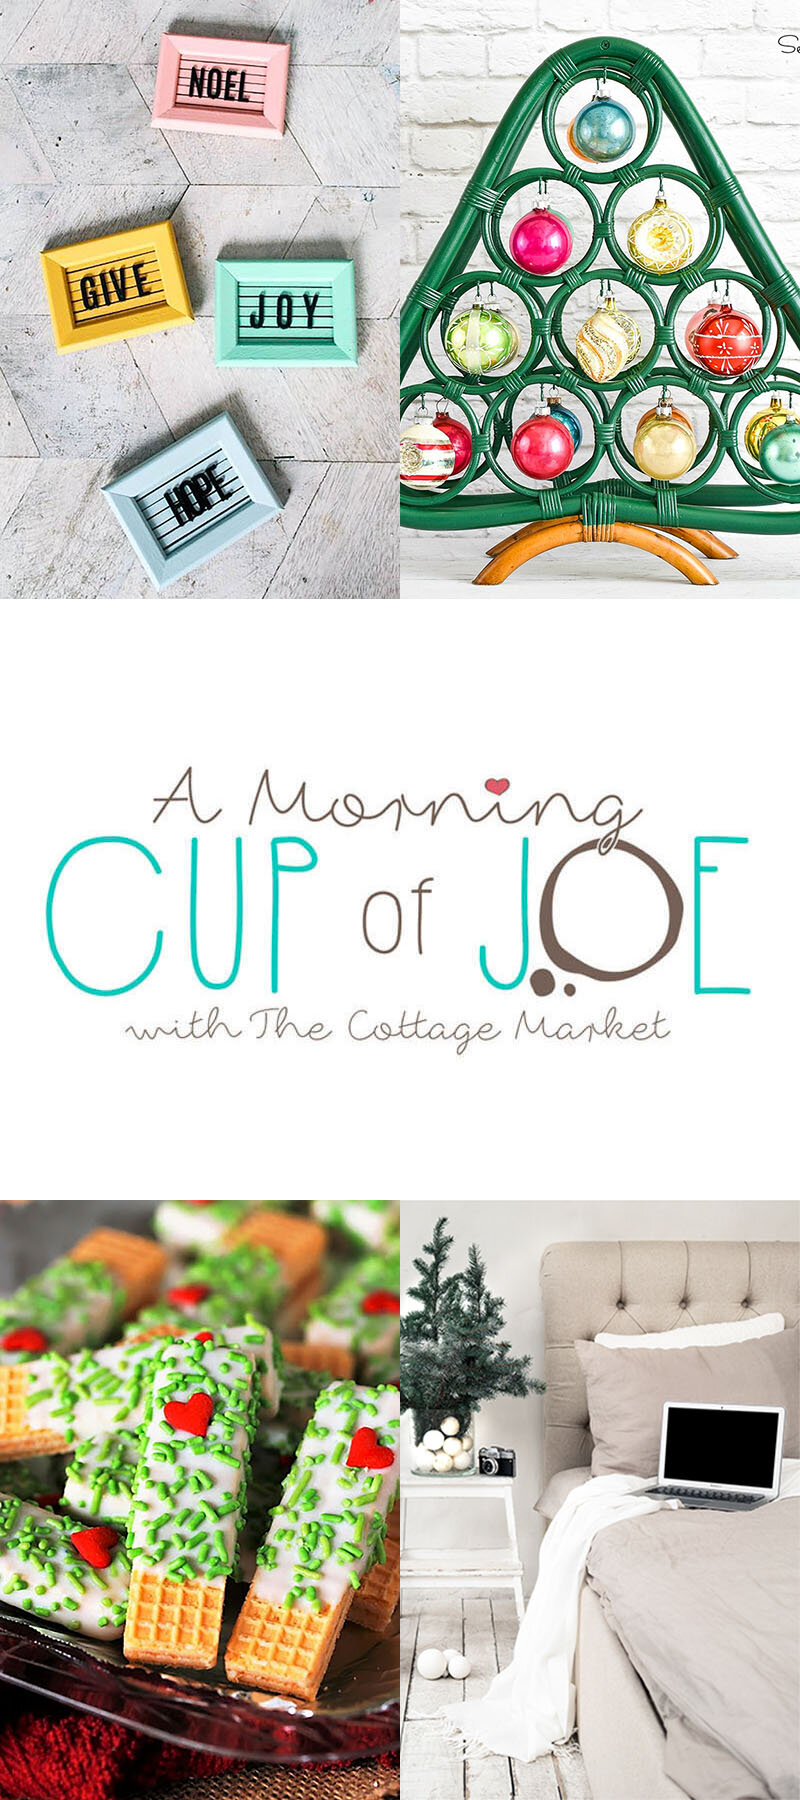 A MORNING CUP OF JOE WITH FEATURES AND LINKY PARTY!